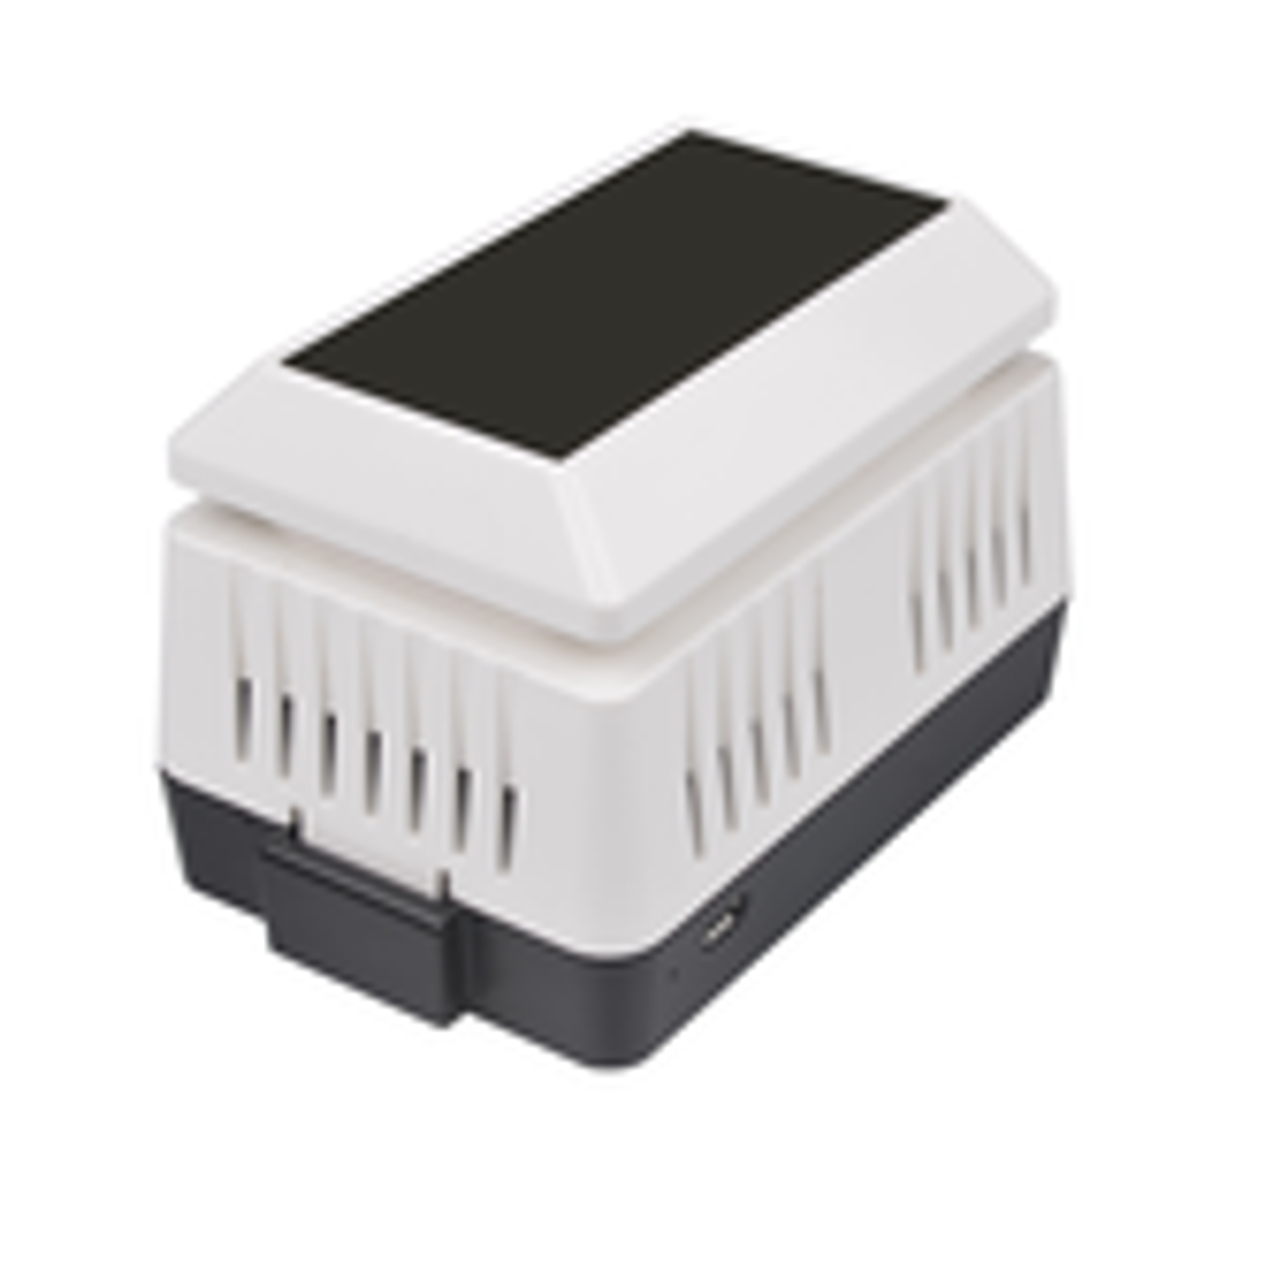 Aercus Instruments  Particulate Matter (PM2.5) Air Quality Sensor for WeatherMaster